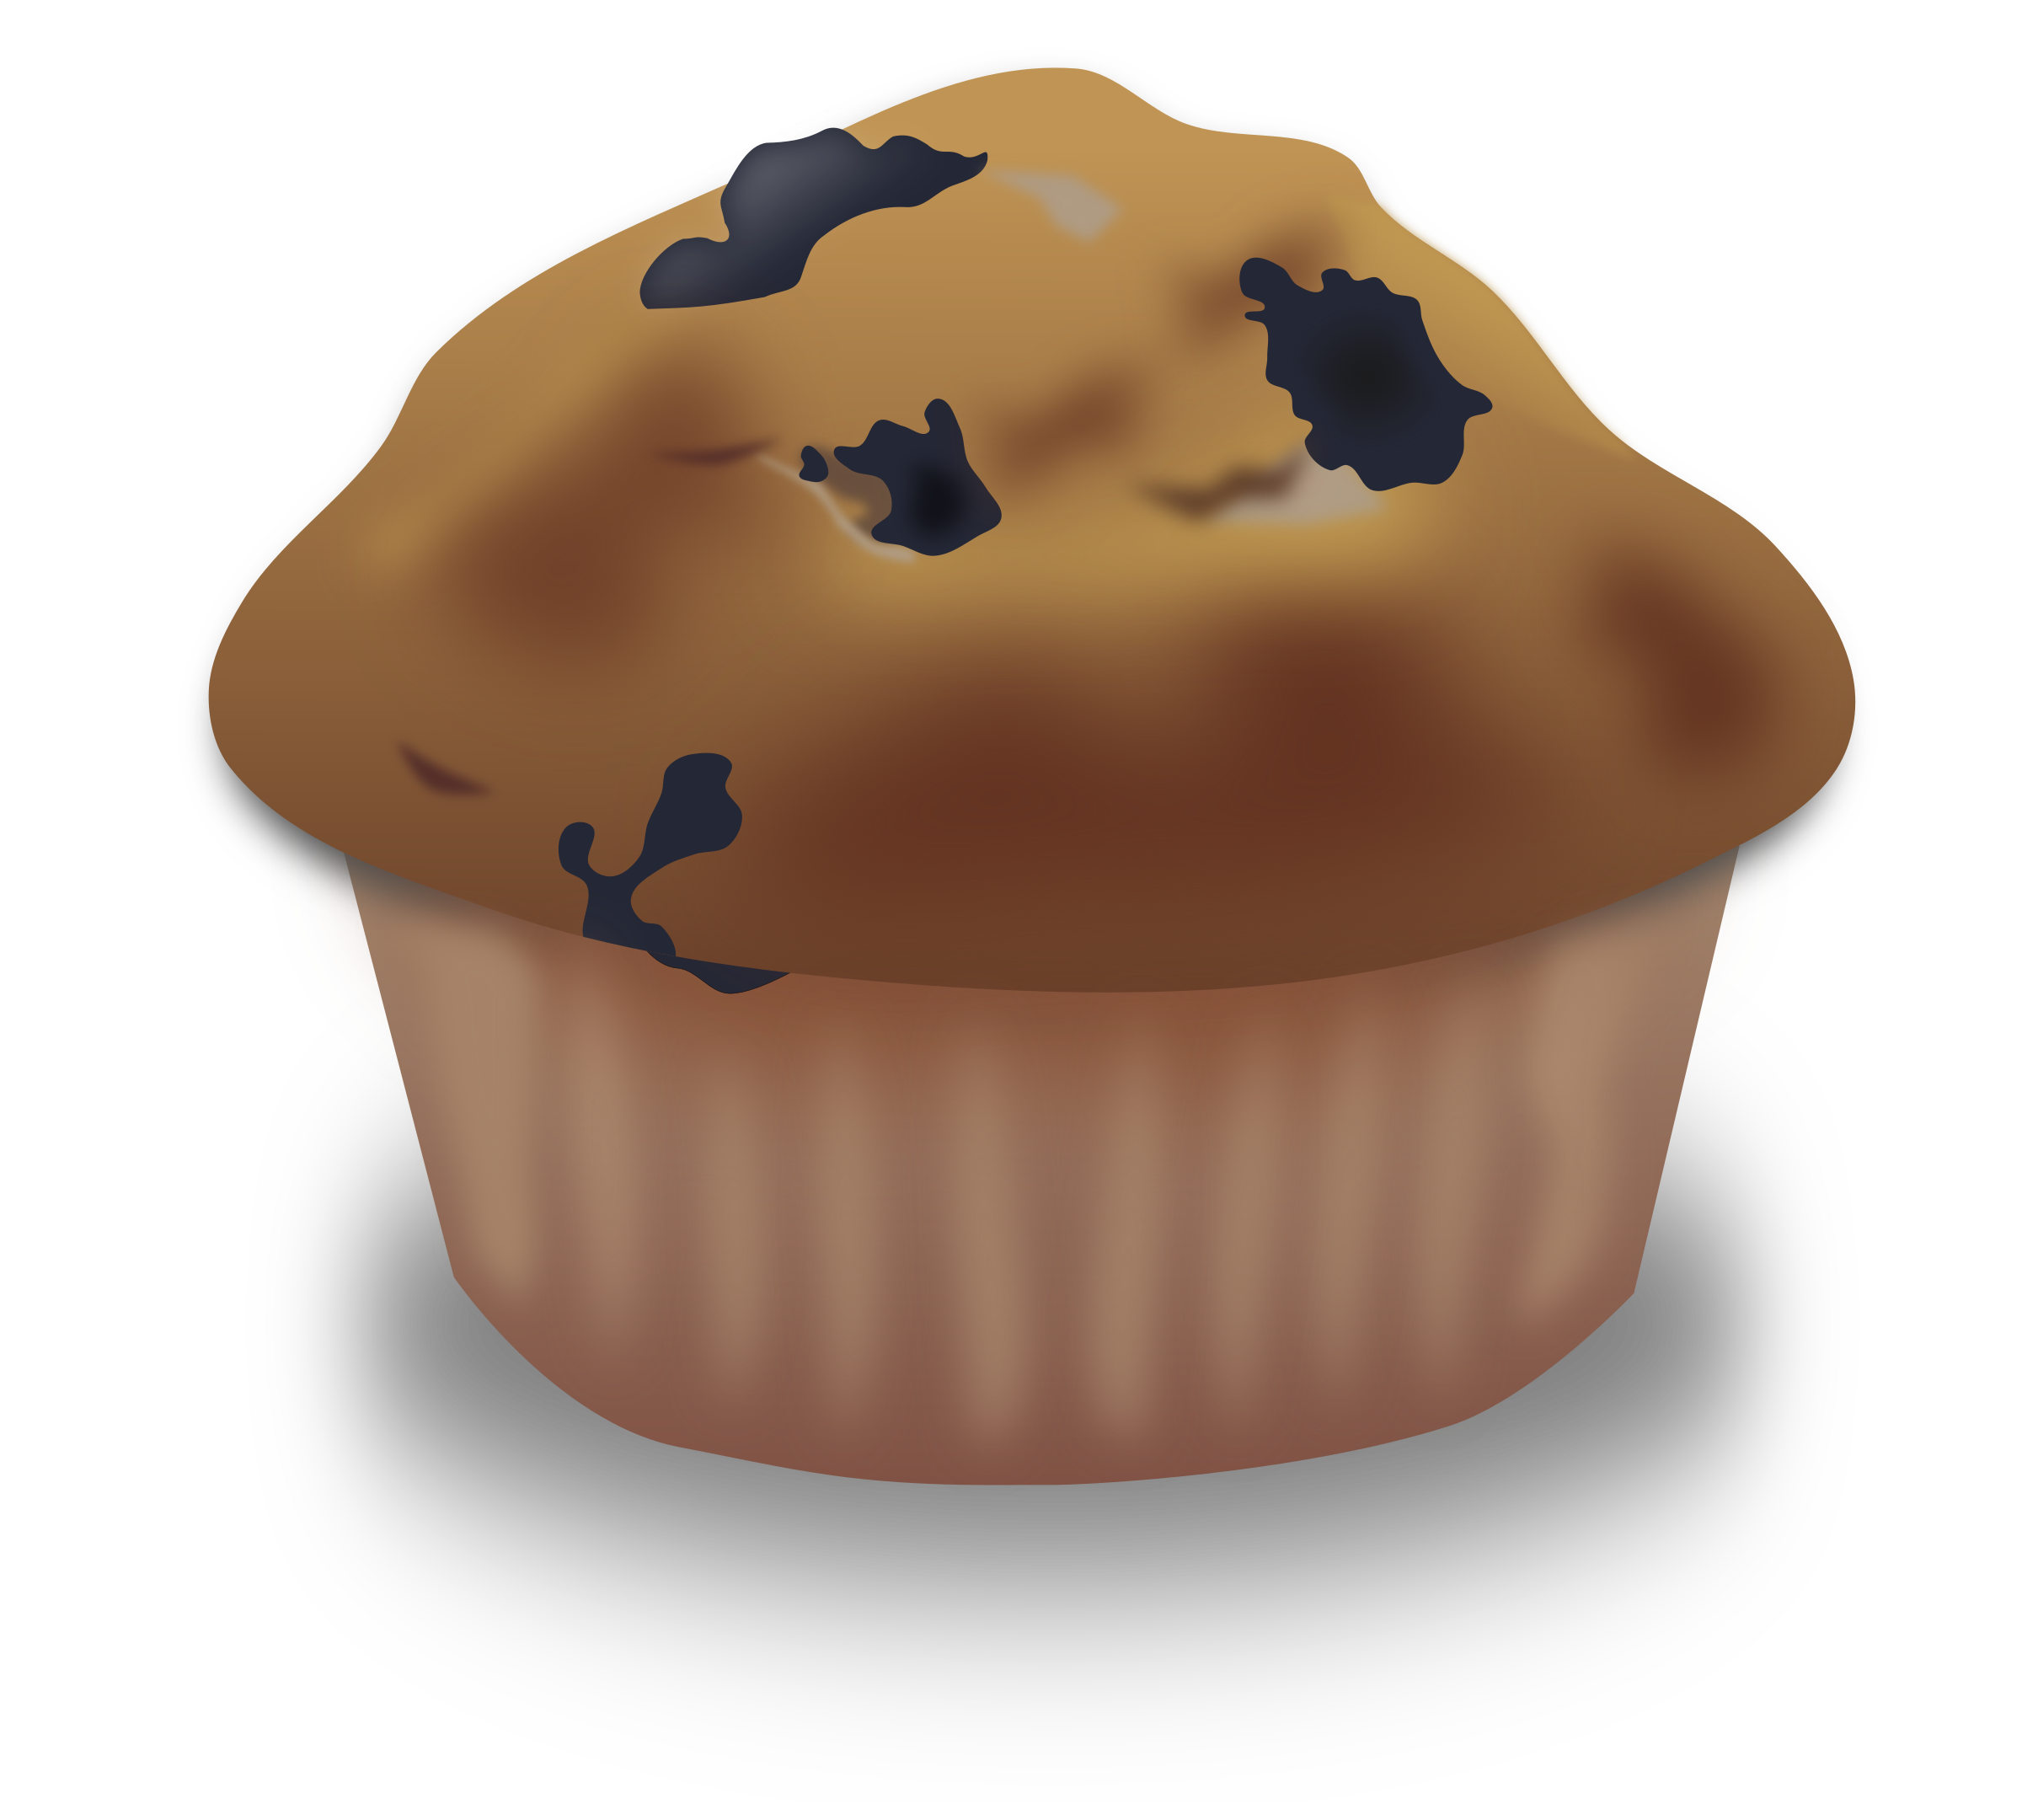 Blueberry Muffin clipart transparent Clipart Muffin Muffin Blueberry Blueberry